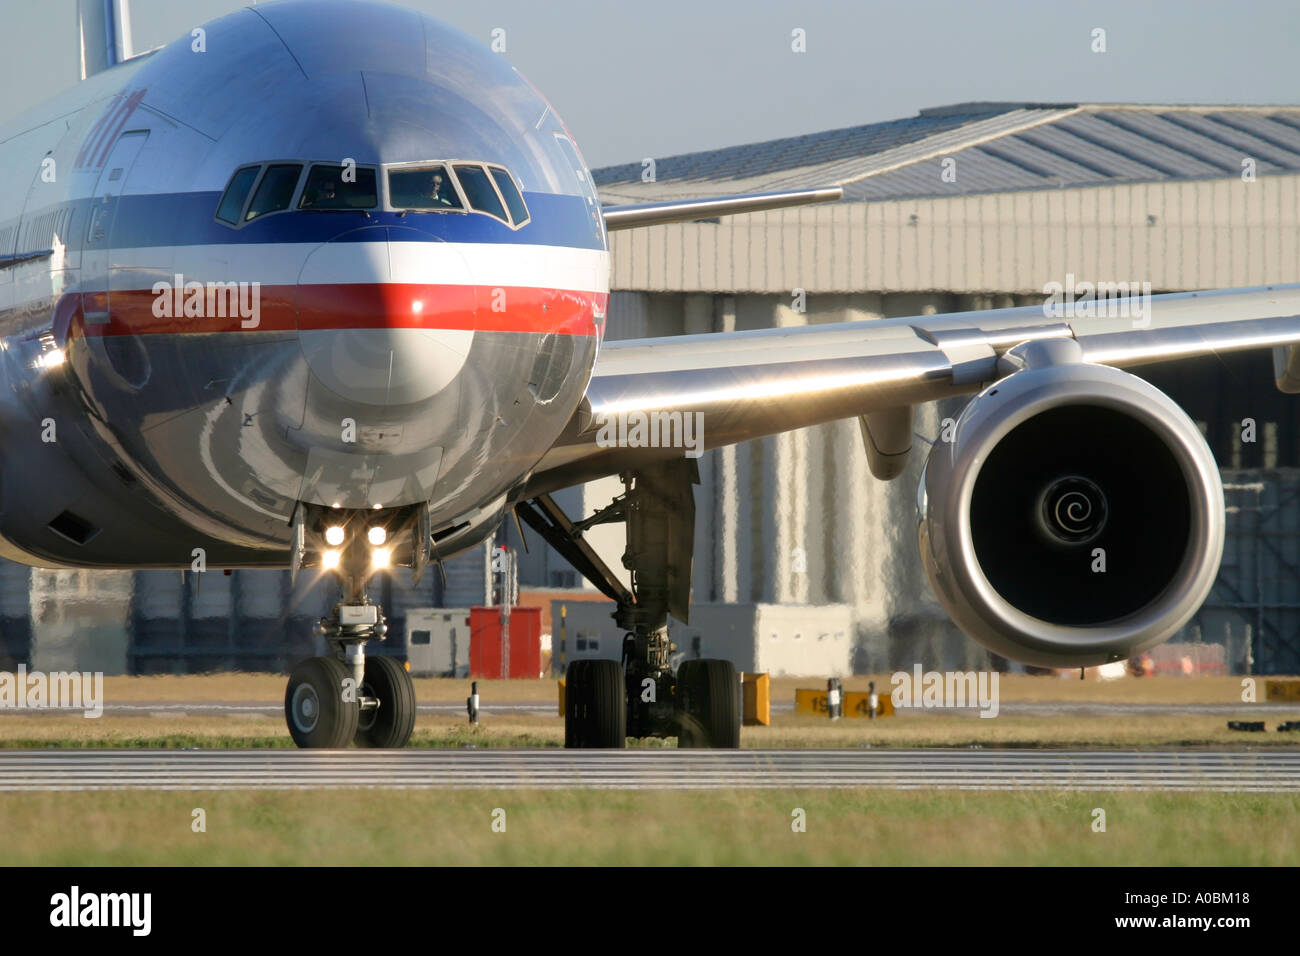 Boeing 777 American Airlines at London Heathrow Airport England UK - Stock Image